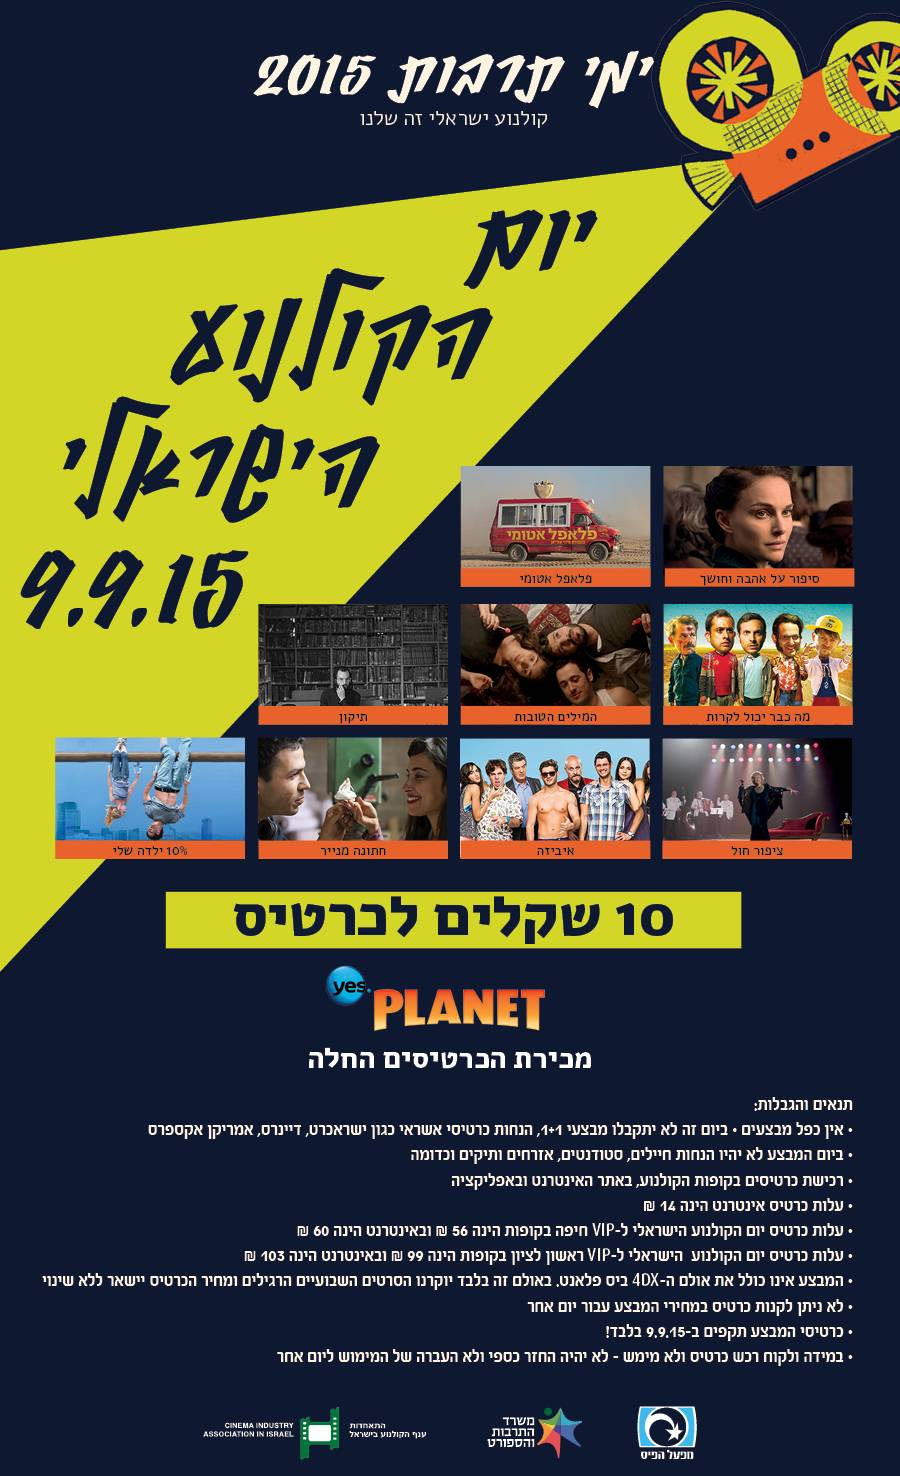 ISRAELI CINEMA DAY_2015 YP LAND PAGE